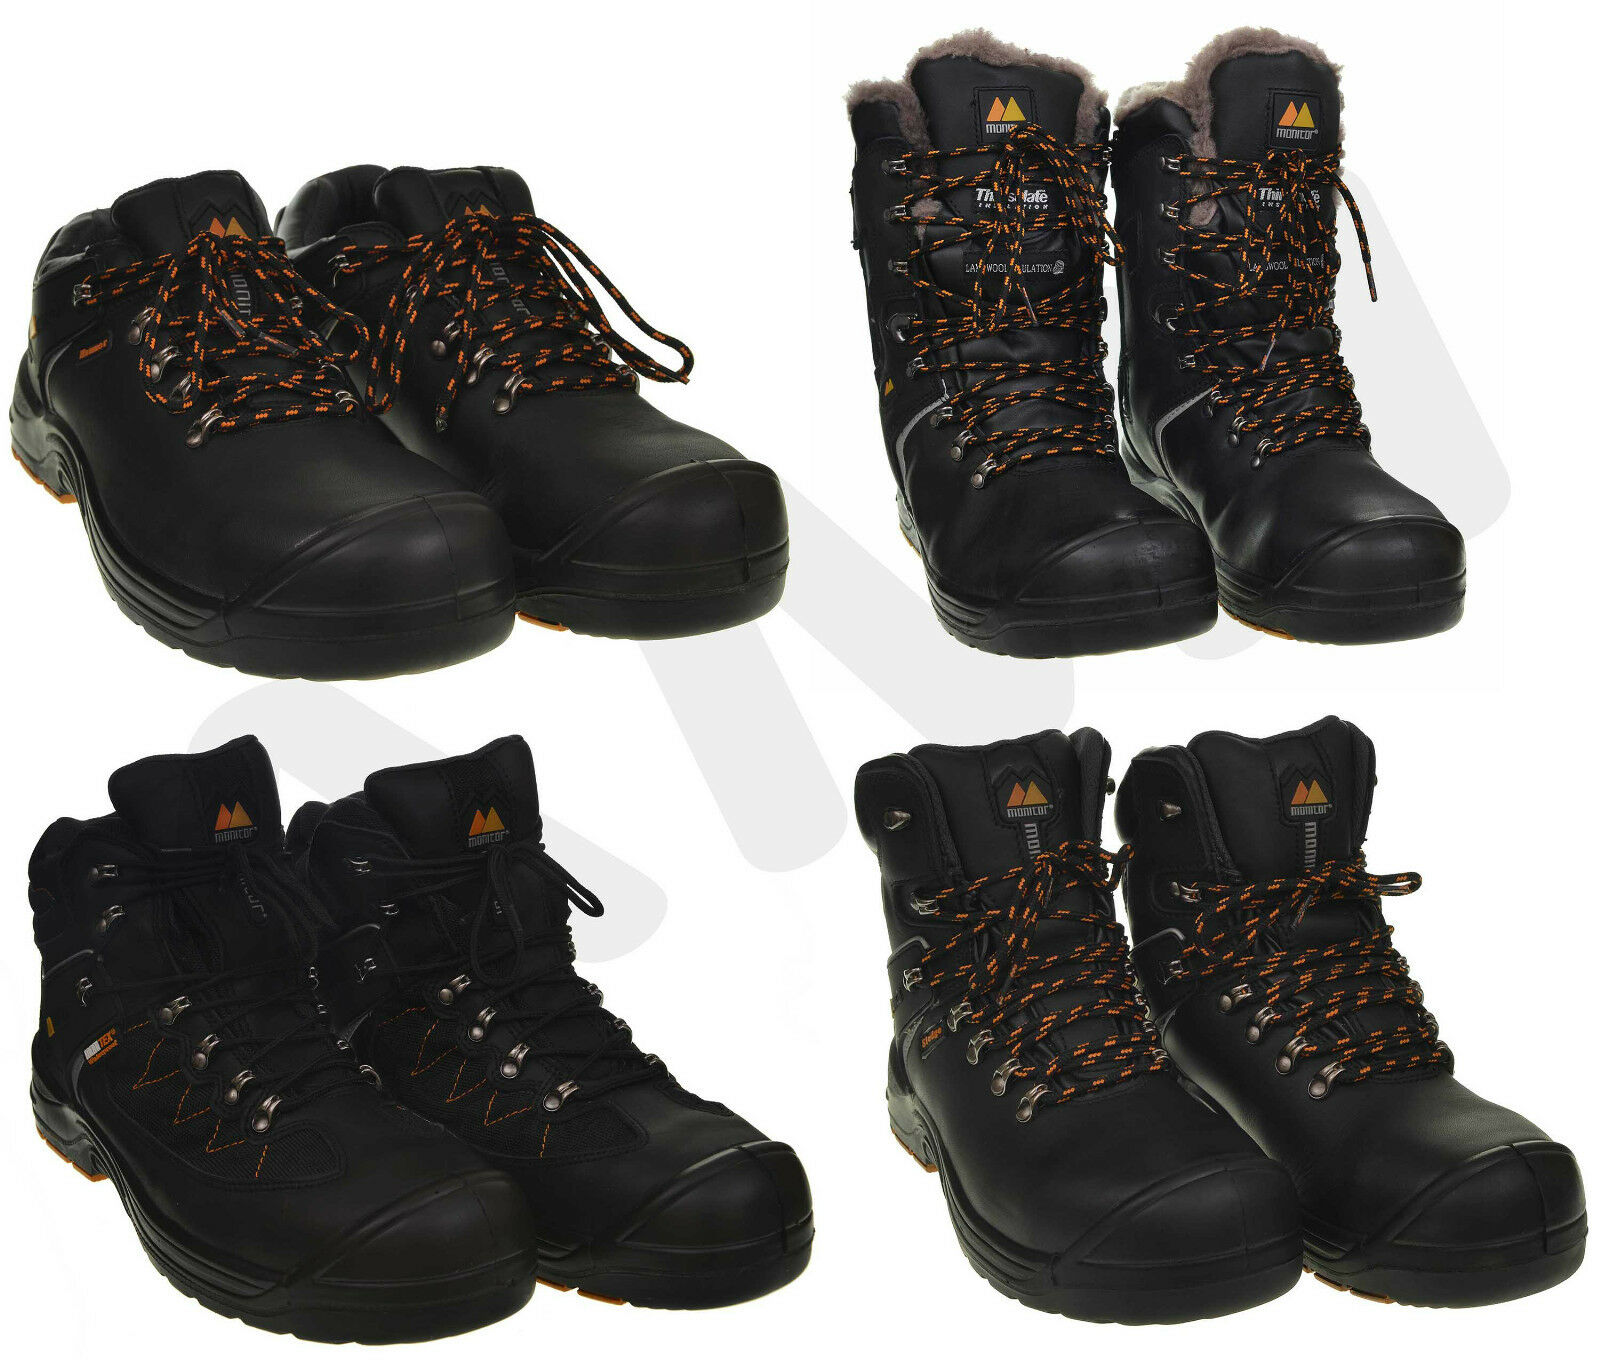 LEATHER MONITOR SAFETY BOOTS, TRAINERS WORK SHOES PredECTIVE TOE CAP SIZES 7-11